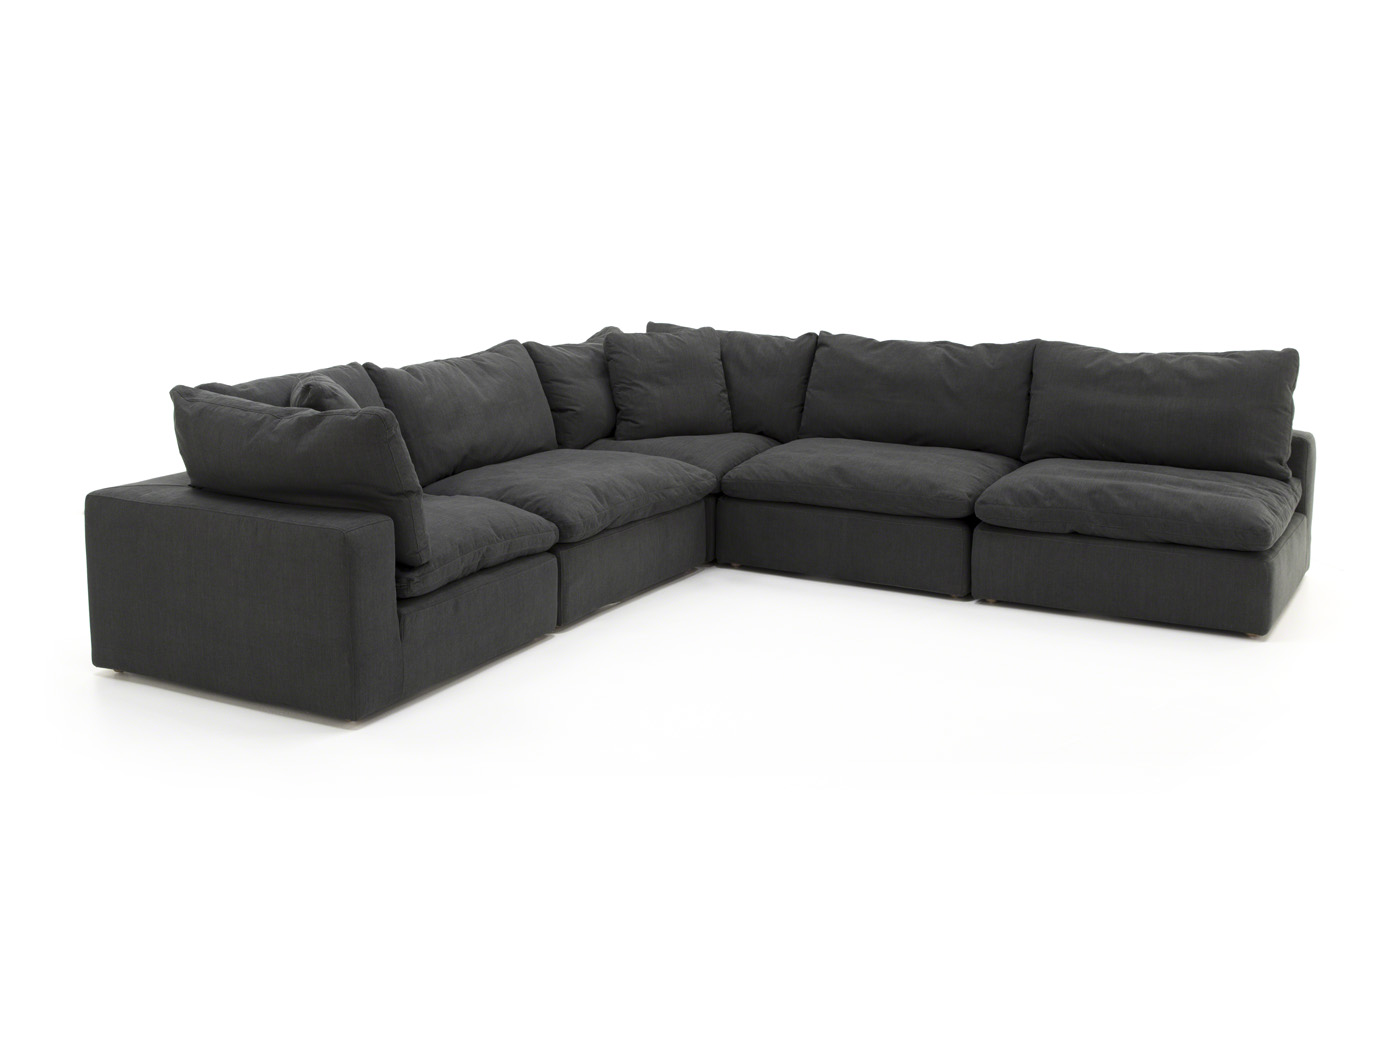 Sofa Dreams Outlet Direct Designs Dream 6 Pc Modular Steinhafels